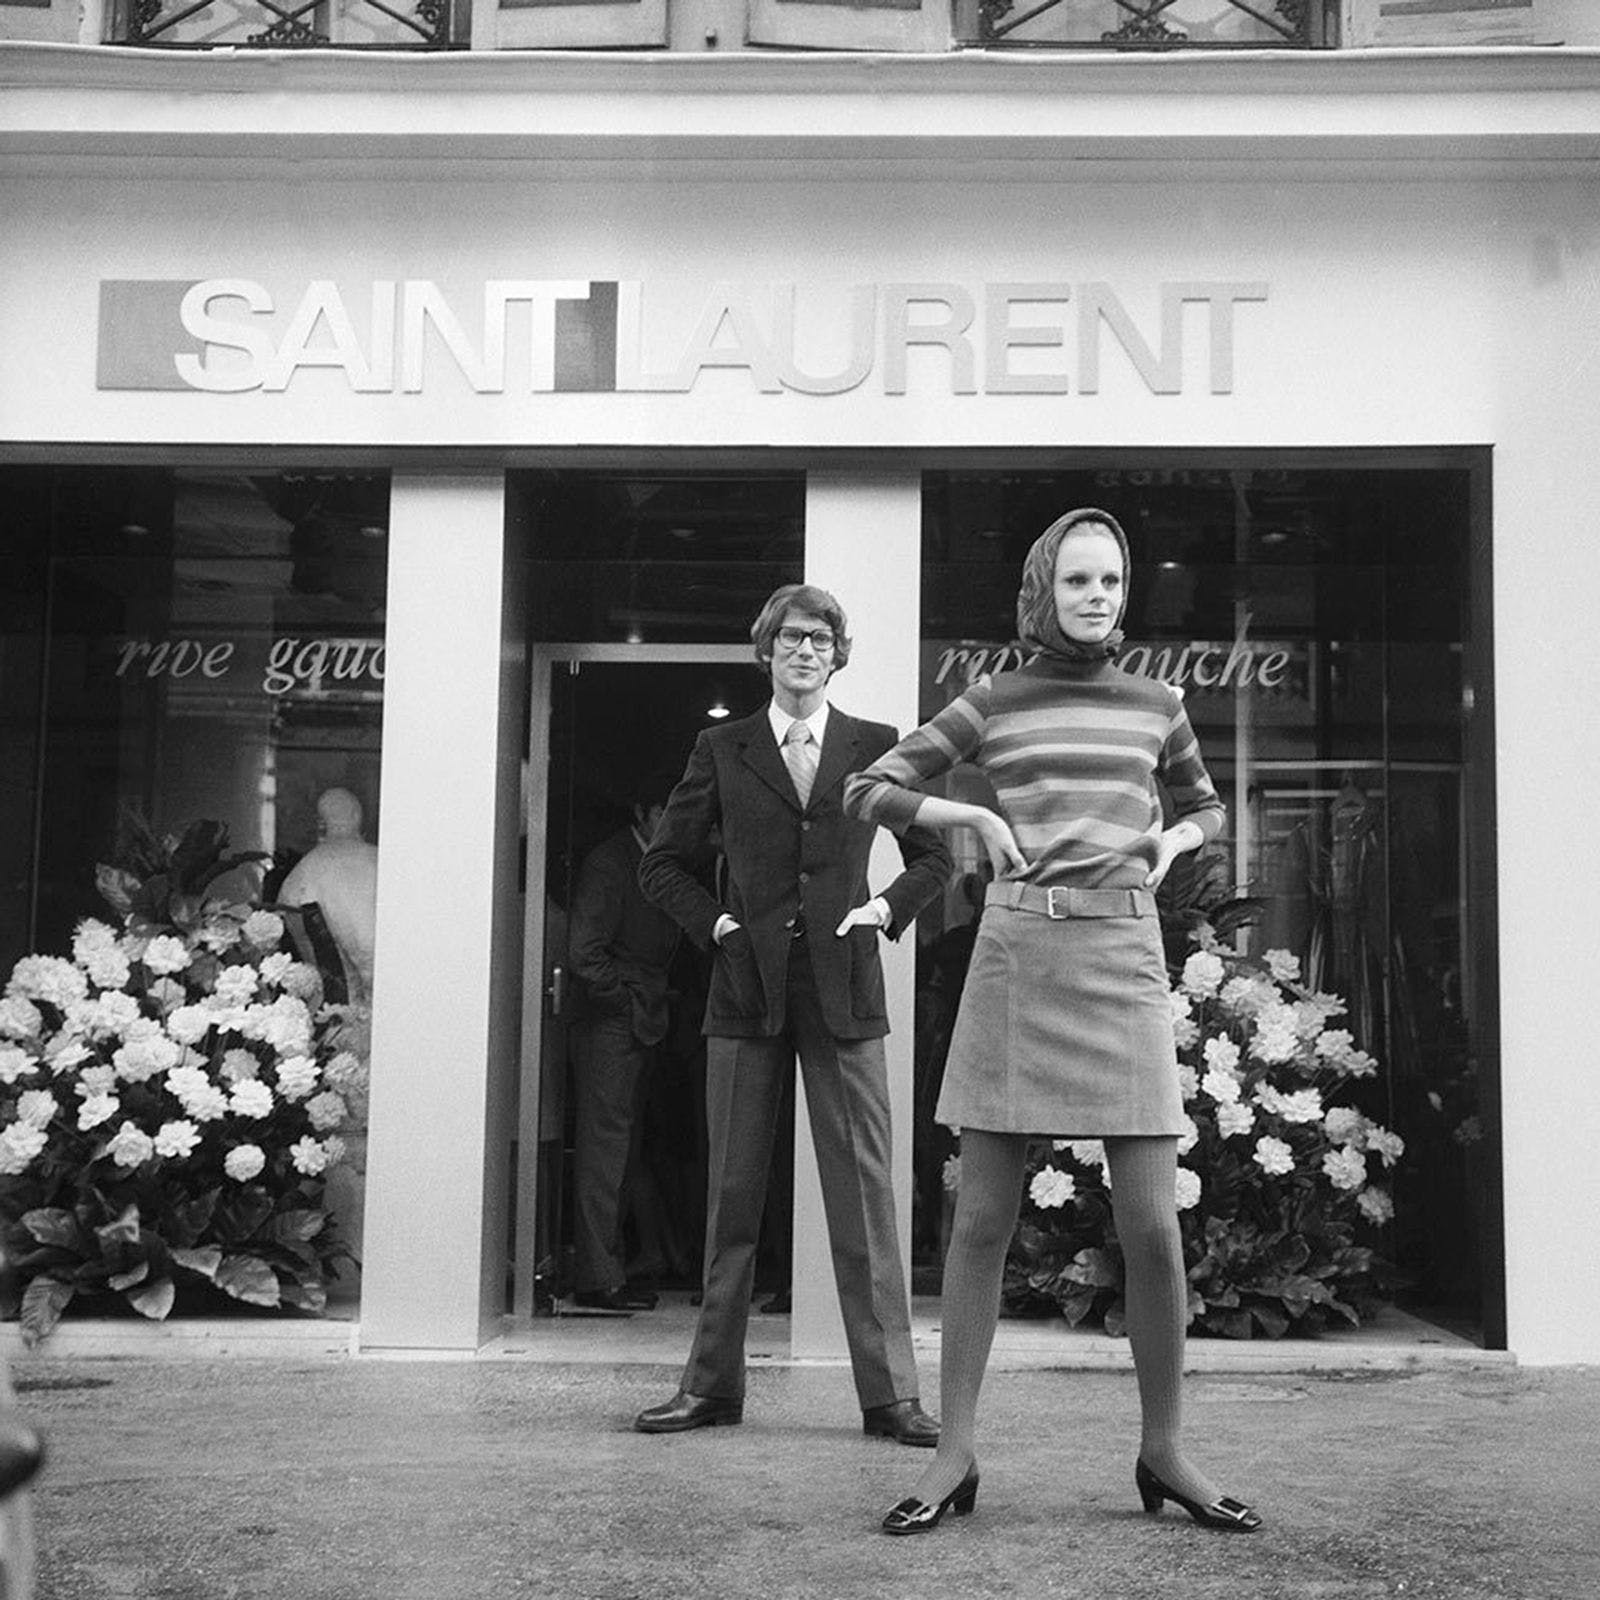 YVES SAINT LAURENT REBRANDING